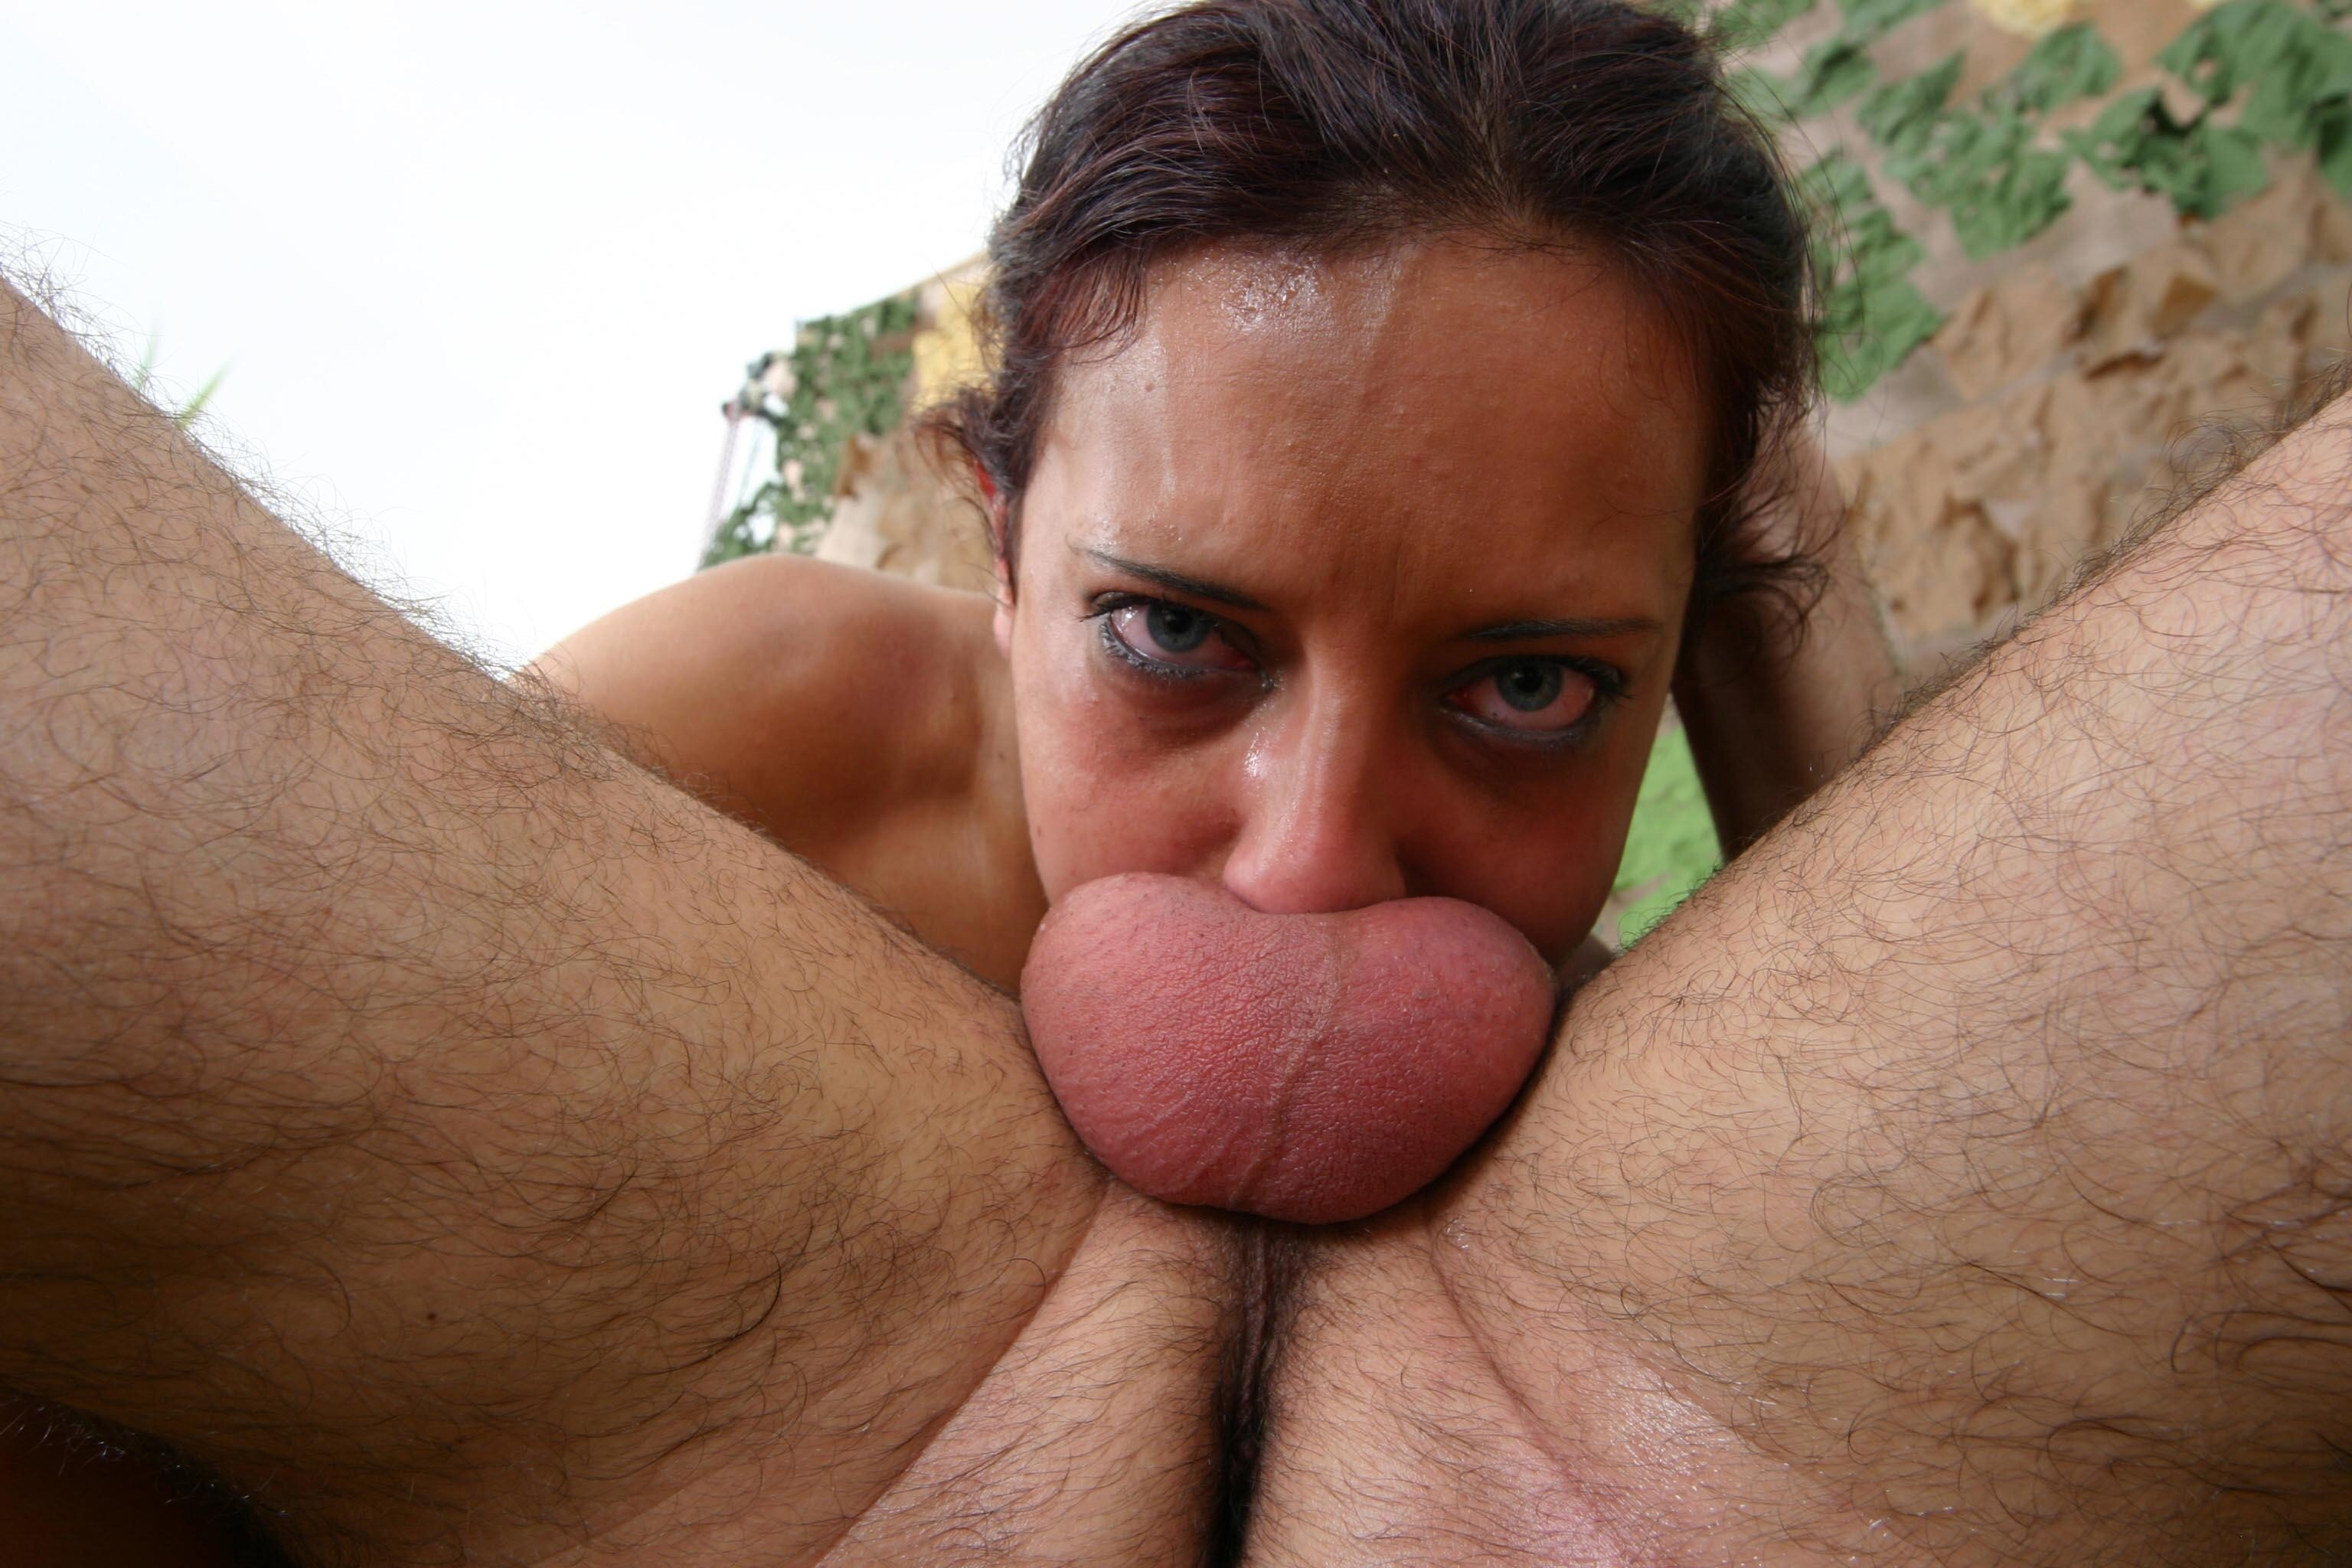 xxx-throat-fucking-pictures